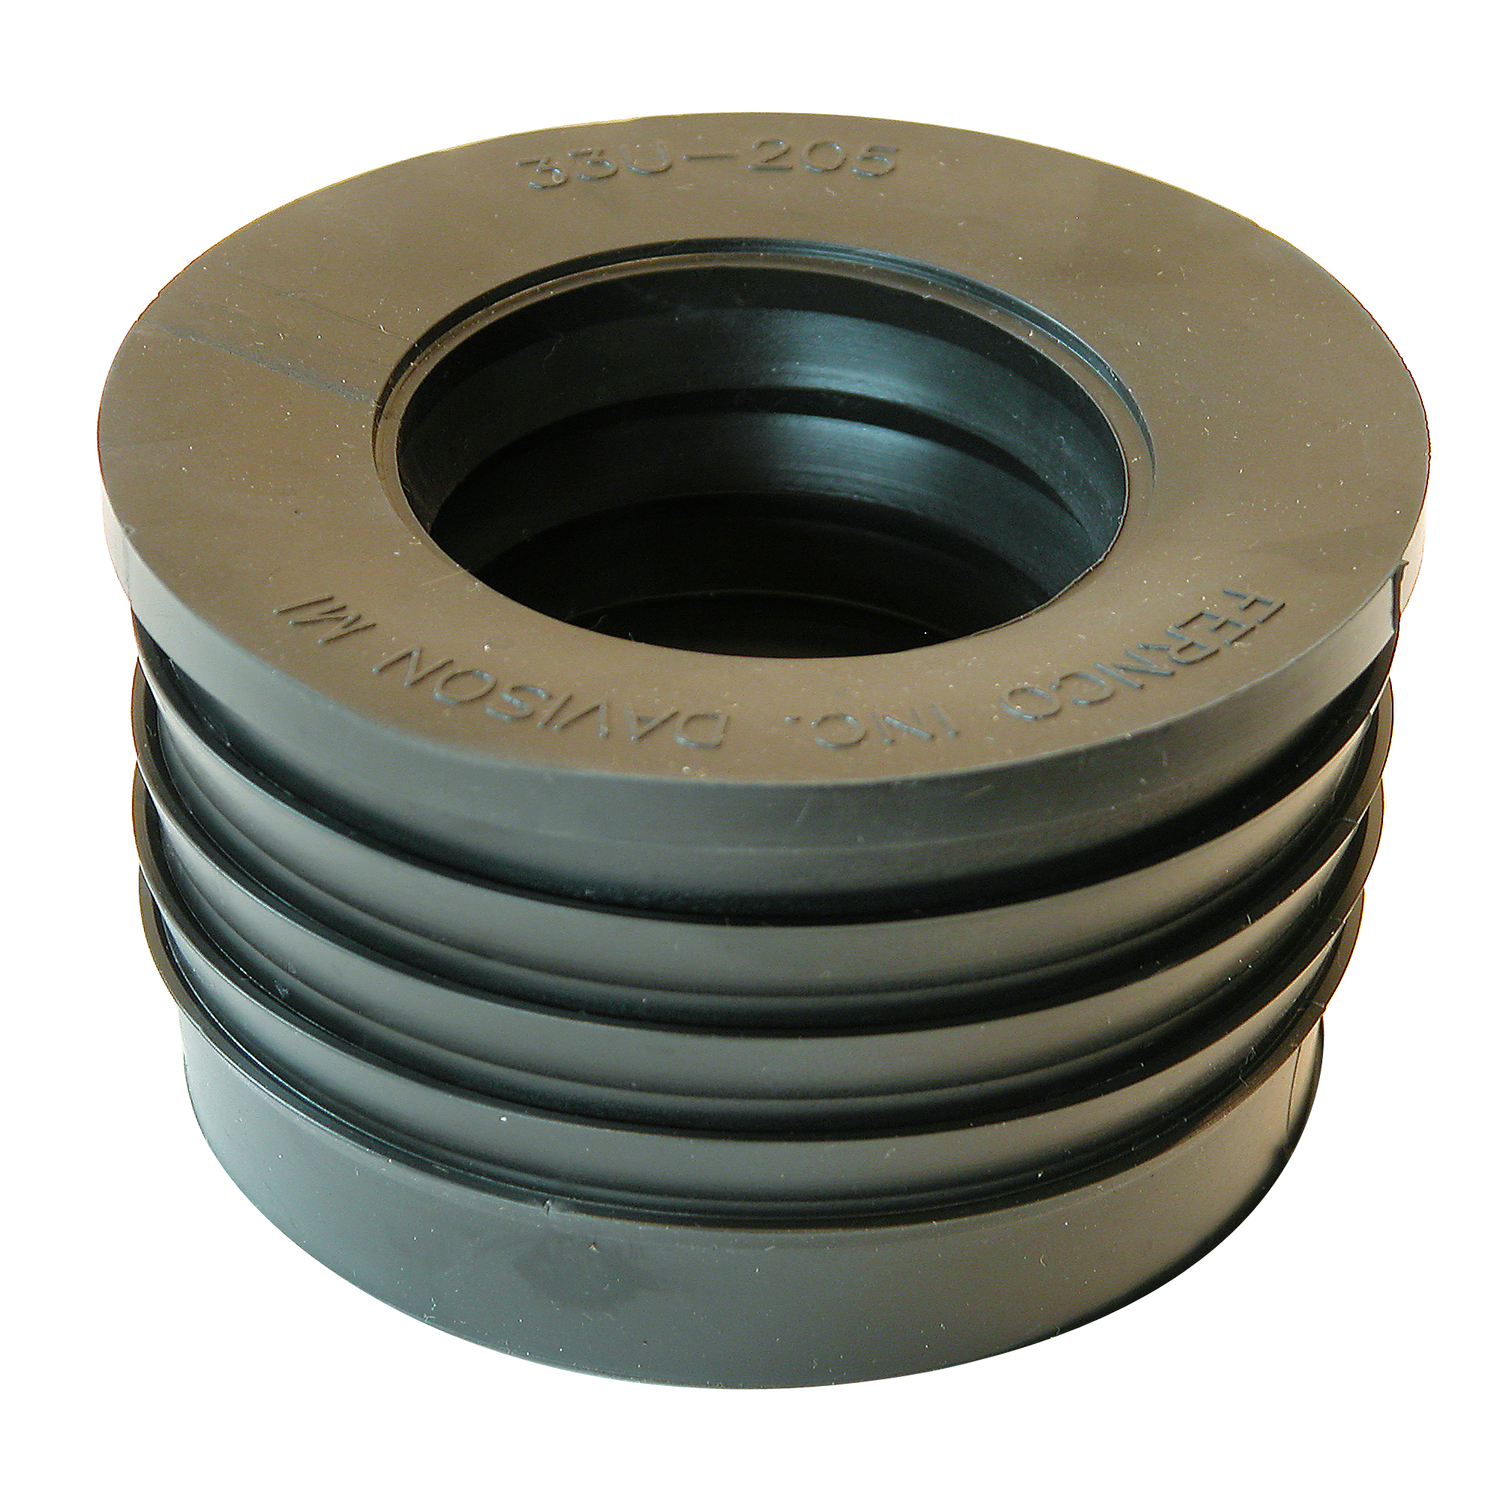 Fernco  Schedule 40  3 in. Hub   x 2 in. Dia. Hub  PVC  Donut Fitting  Compression